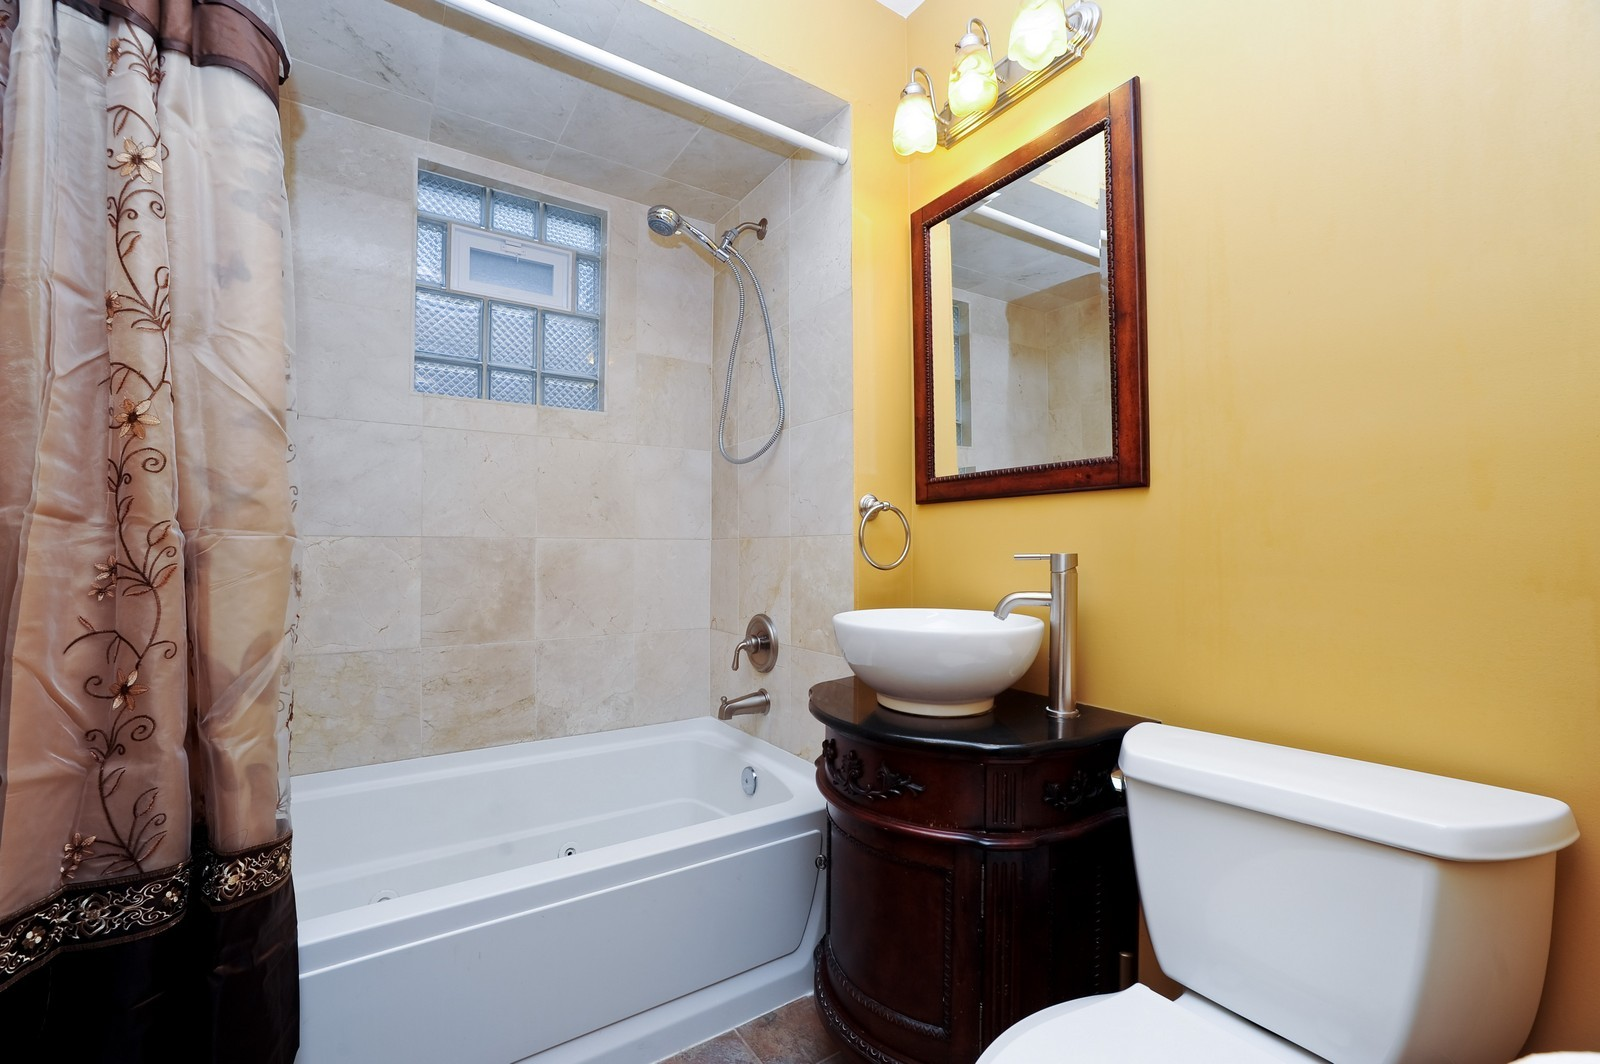 Real Estate Photography - 1837 Ashland Ave, Evanston, IL, 60201 - Bathroom